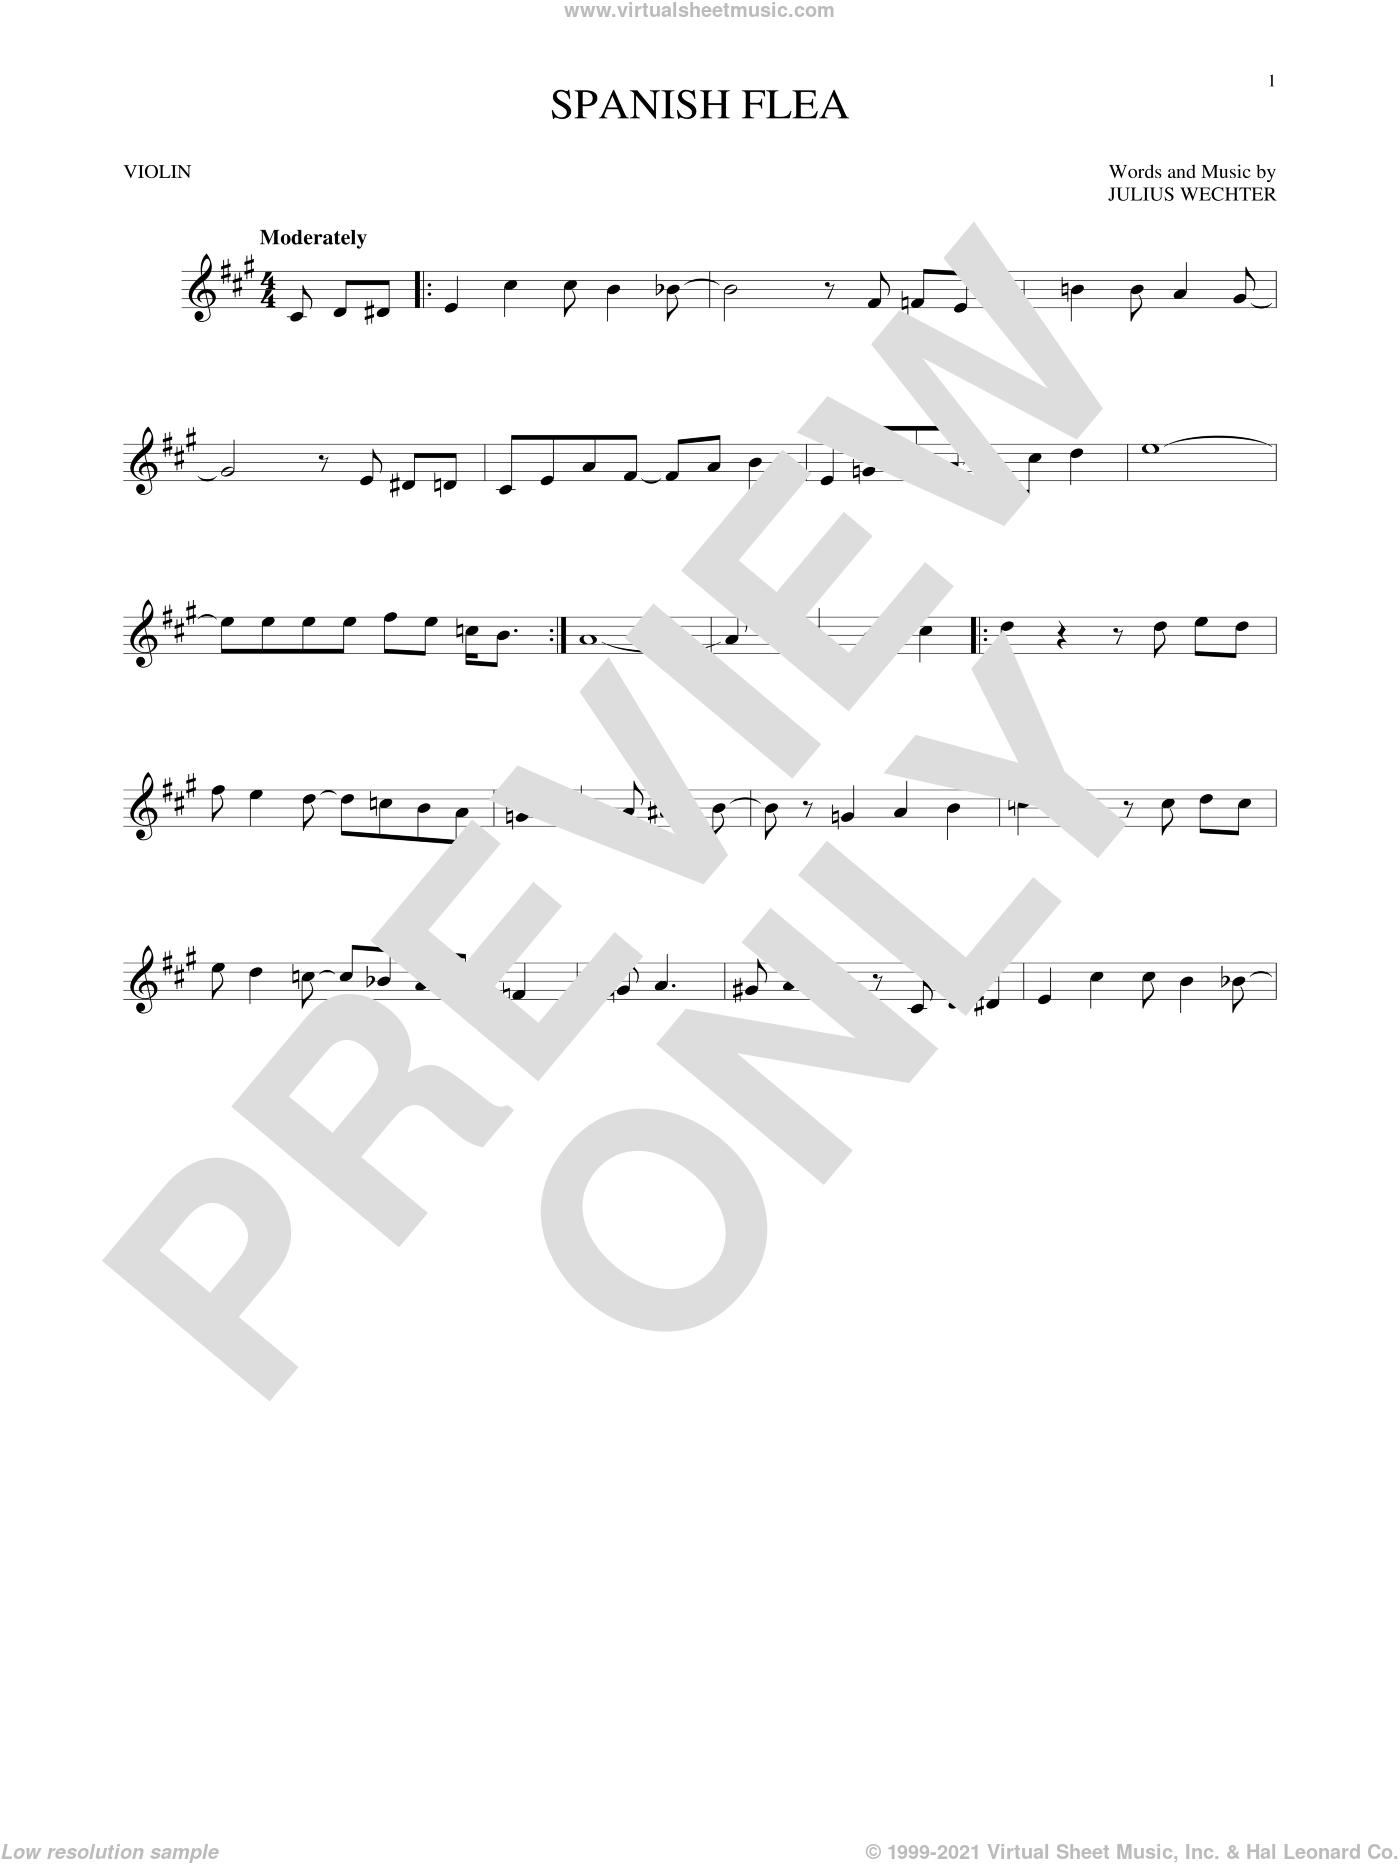 Spanish Flea sheet music for violin solo by Herb Alpert & The Tijuana Brass Band, intermediate. Score Image Preview.